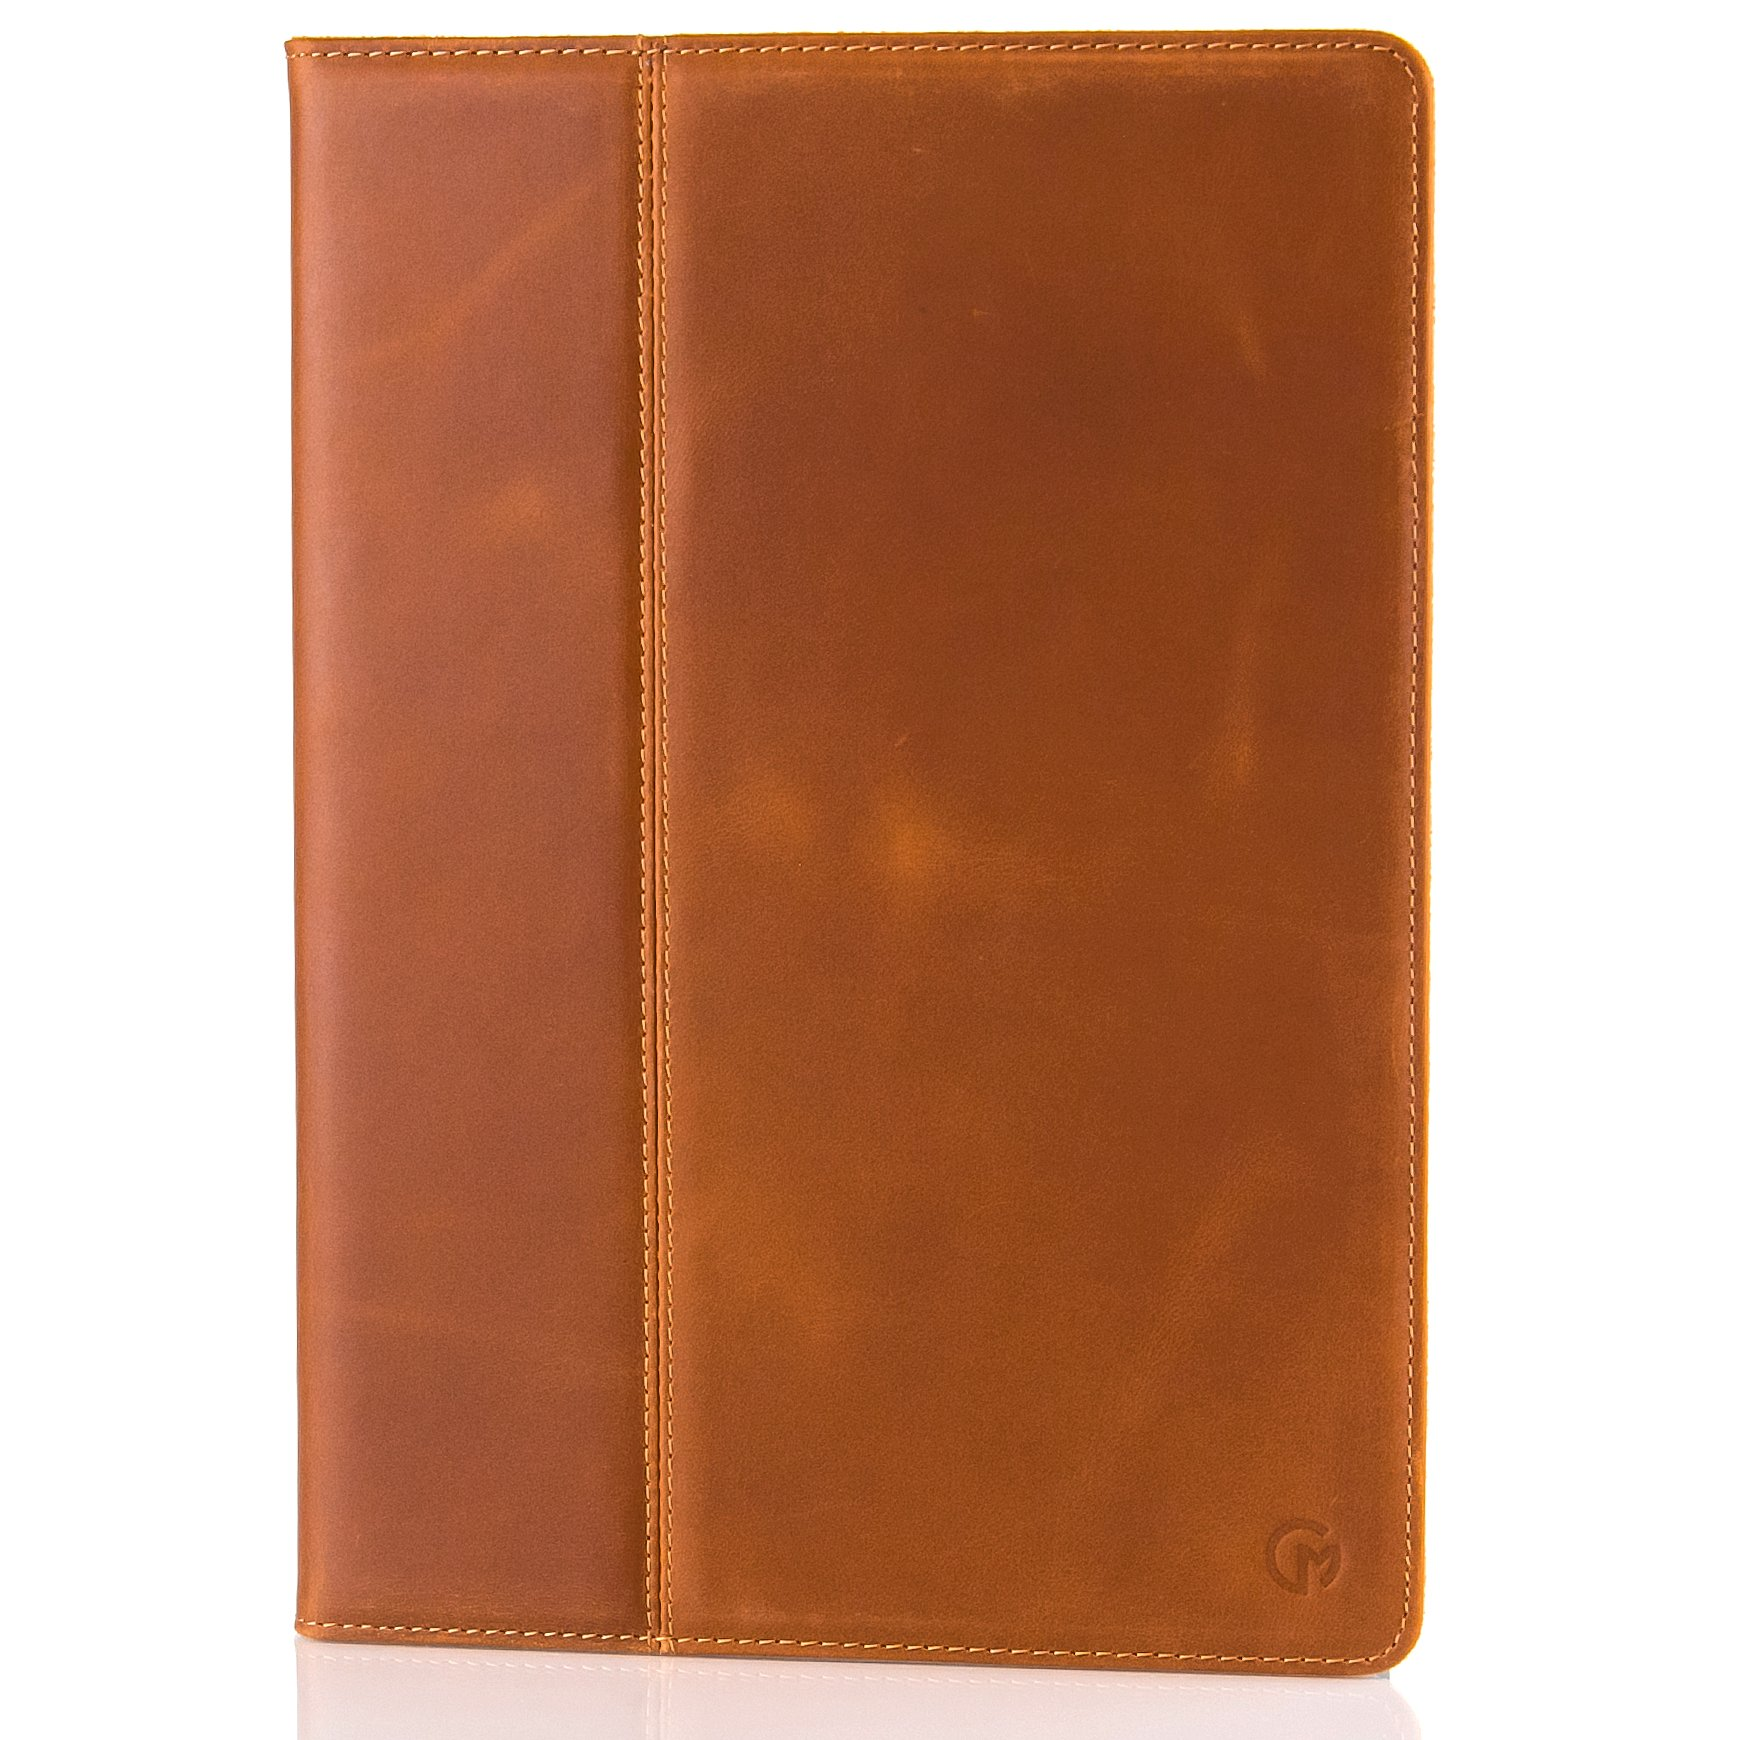 iPad Pro (10.5 inch display) Case / Cover by Casemade Luxury Real Italian Leather for the Apple iPad Pro (Tan)